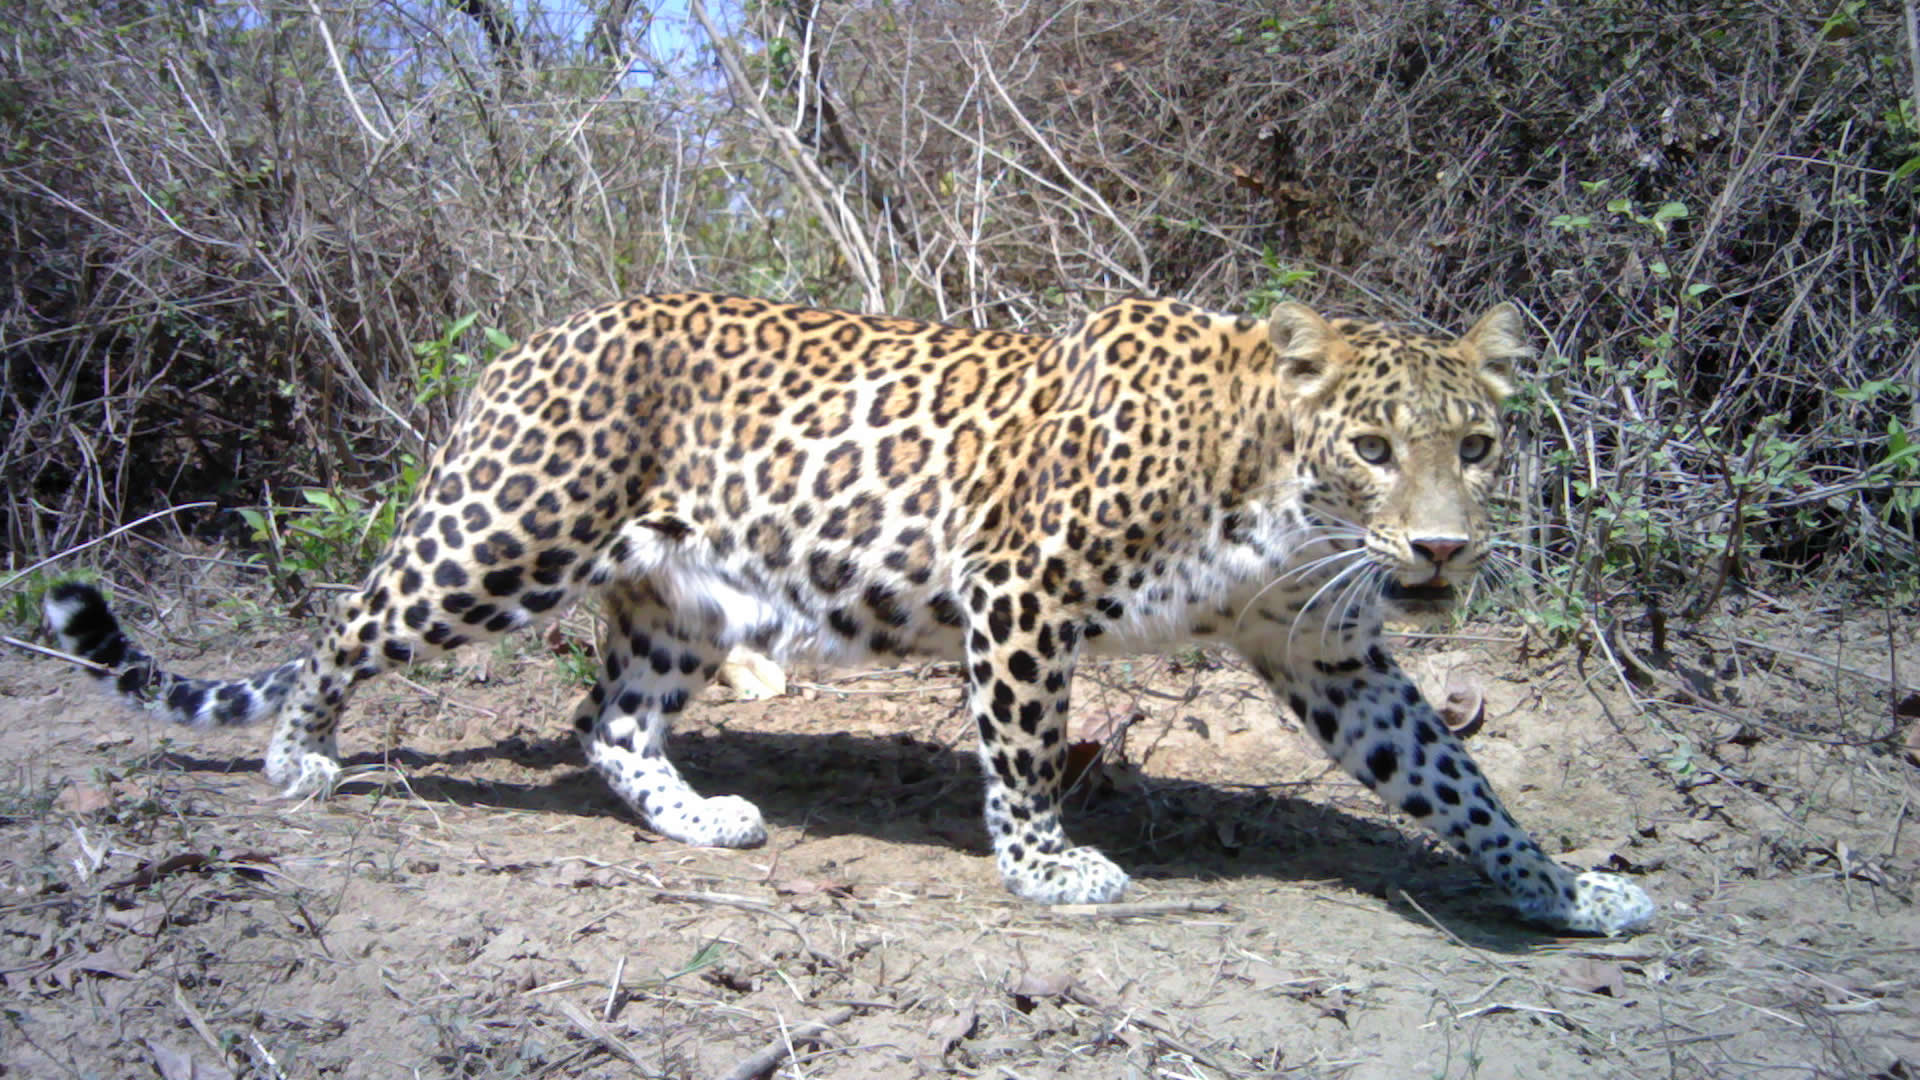 LEOPARD ON TRACK